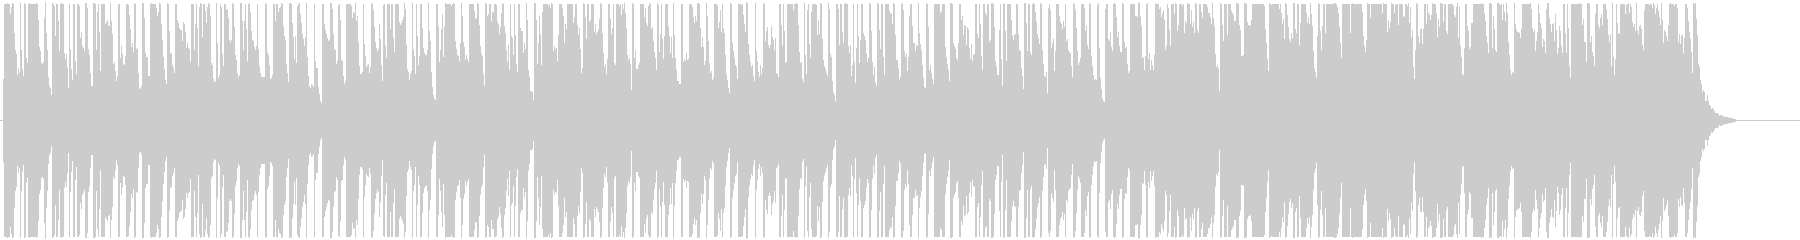 Fairy tale BGM's unreproduced waveform